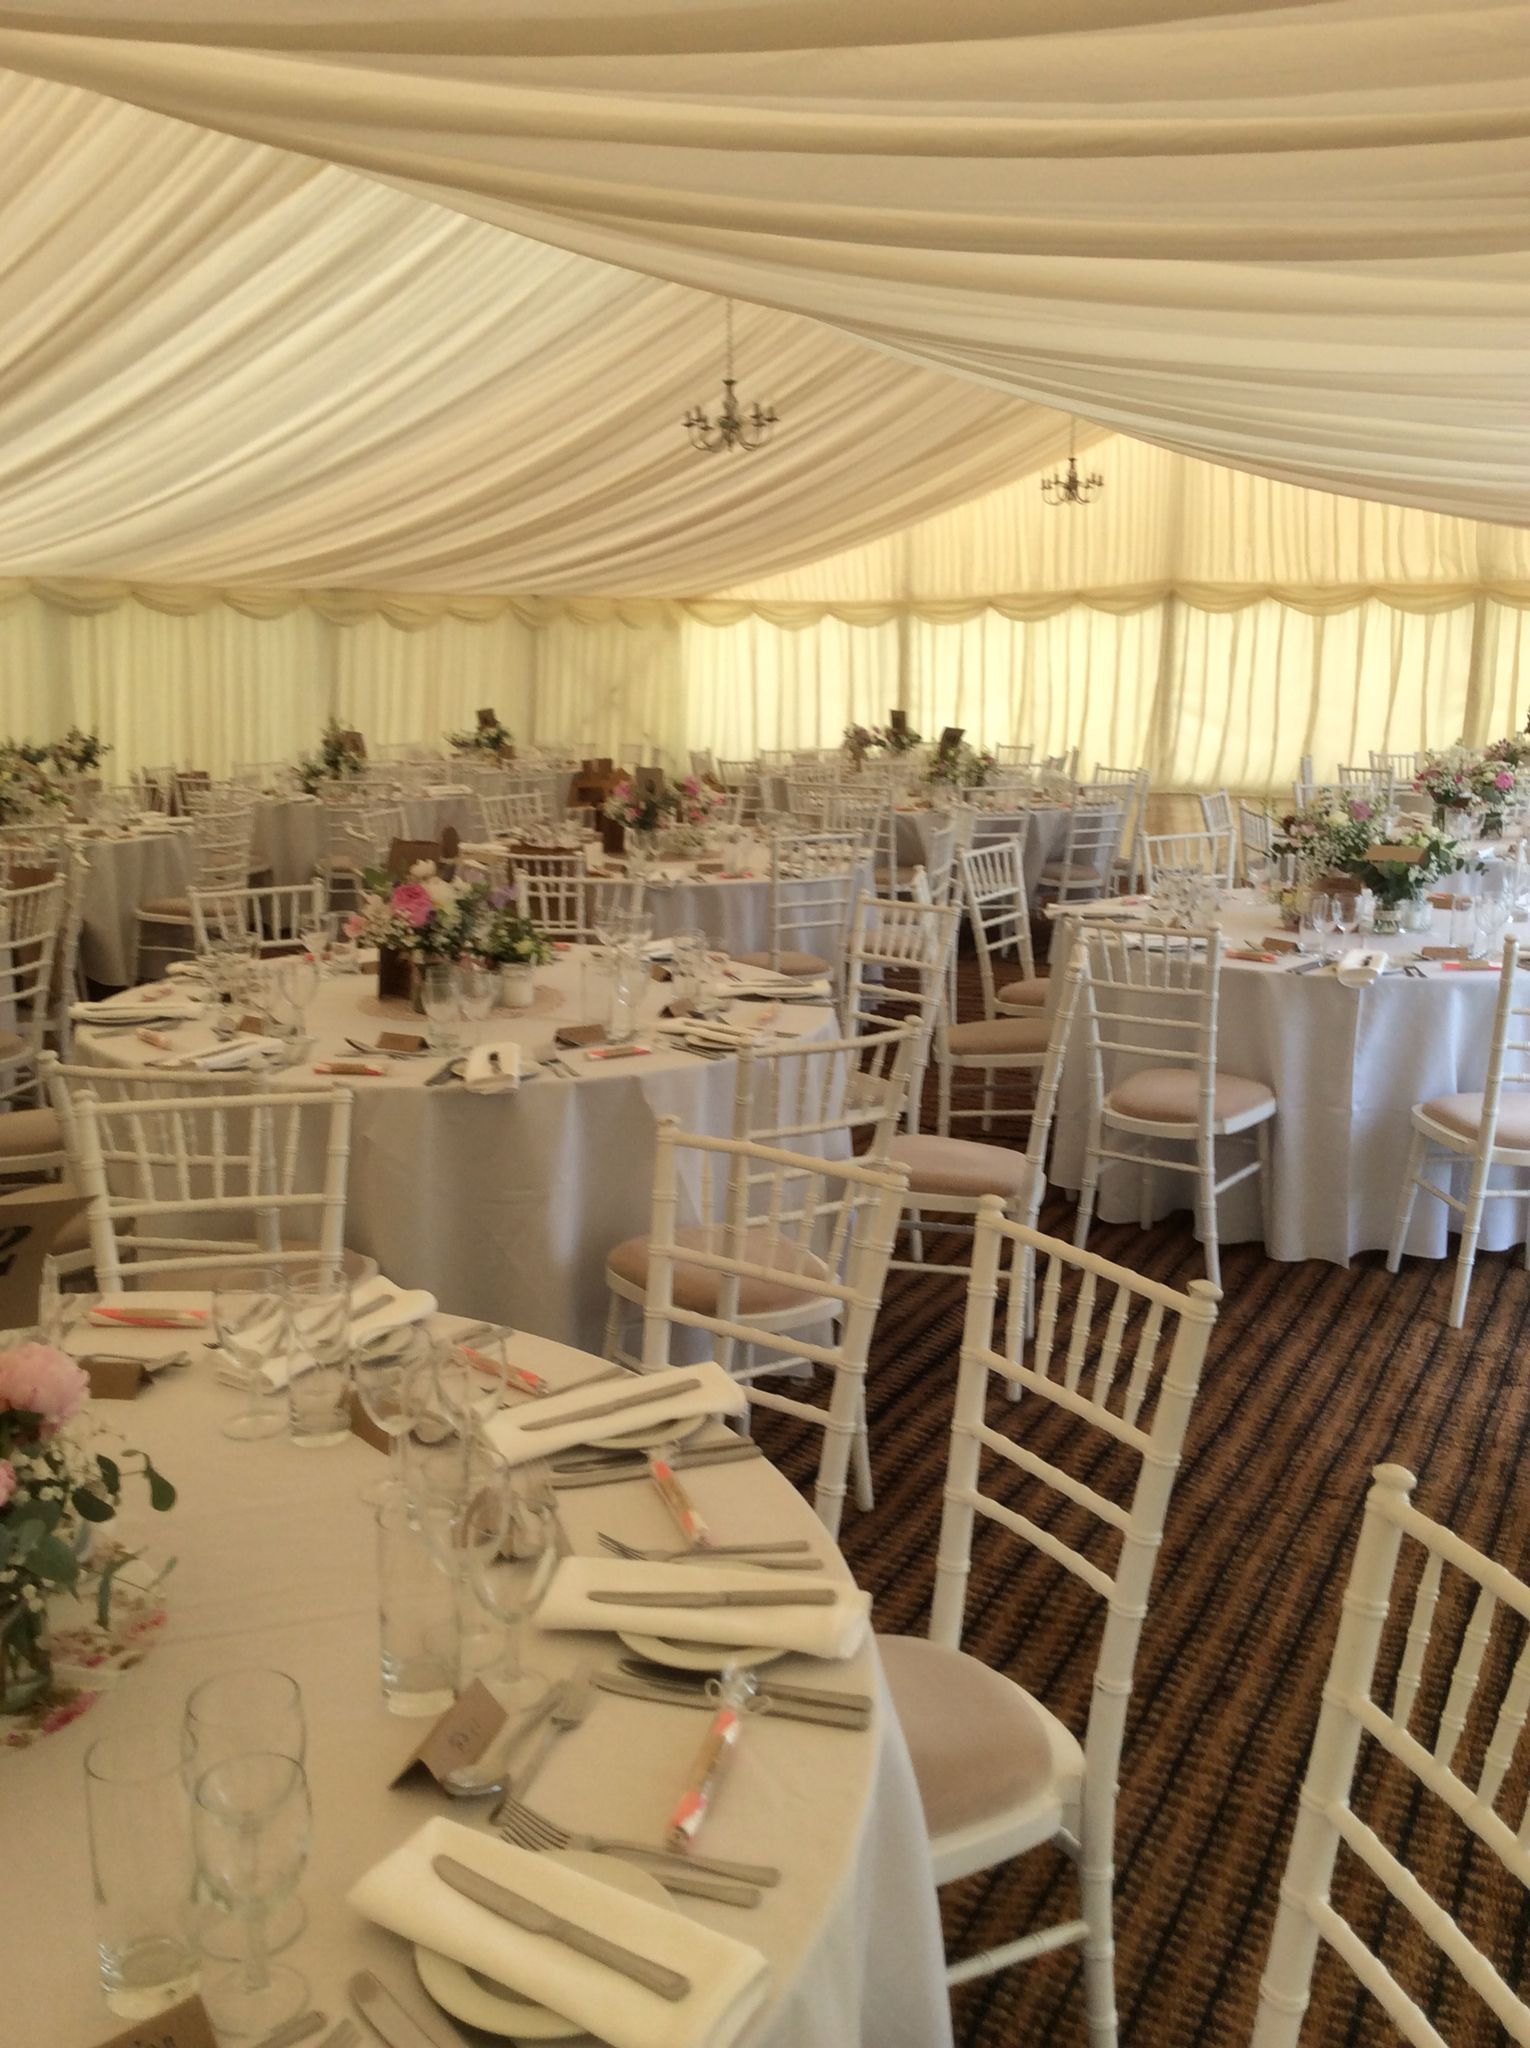 Sus Chiavari Chair Hire From Pollen4hire Firle Place Marquee Wedding